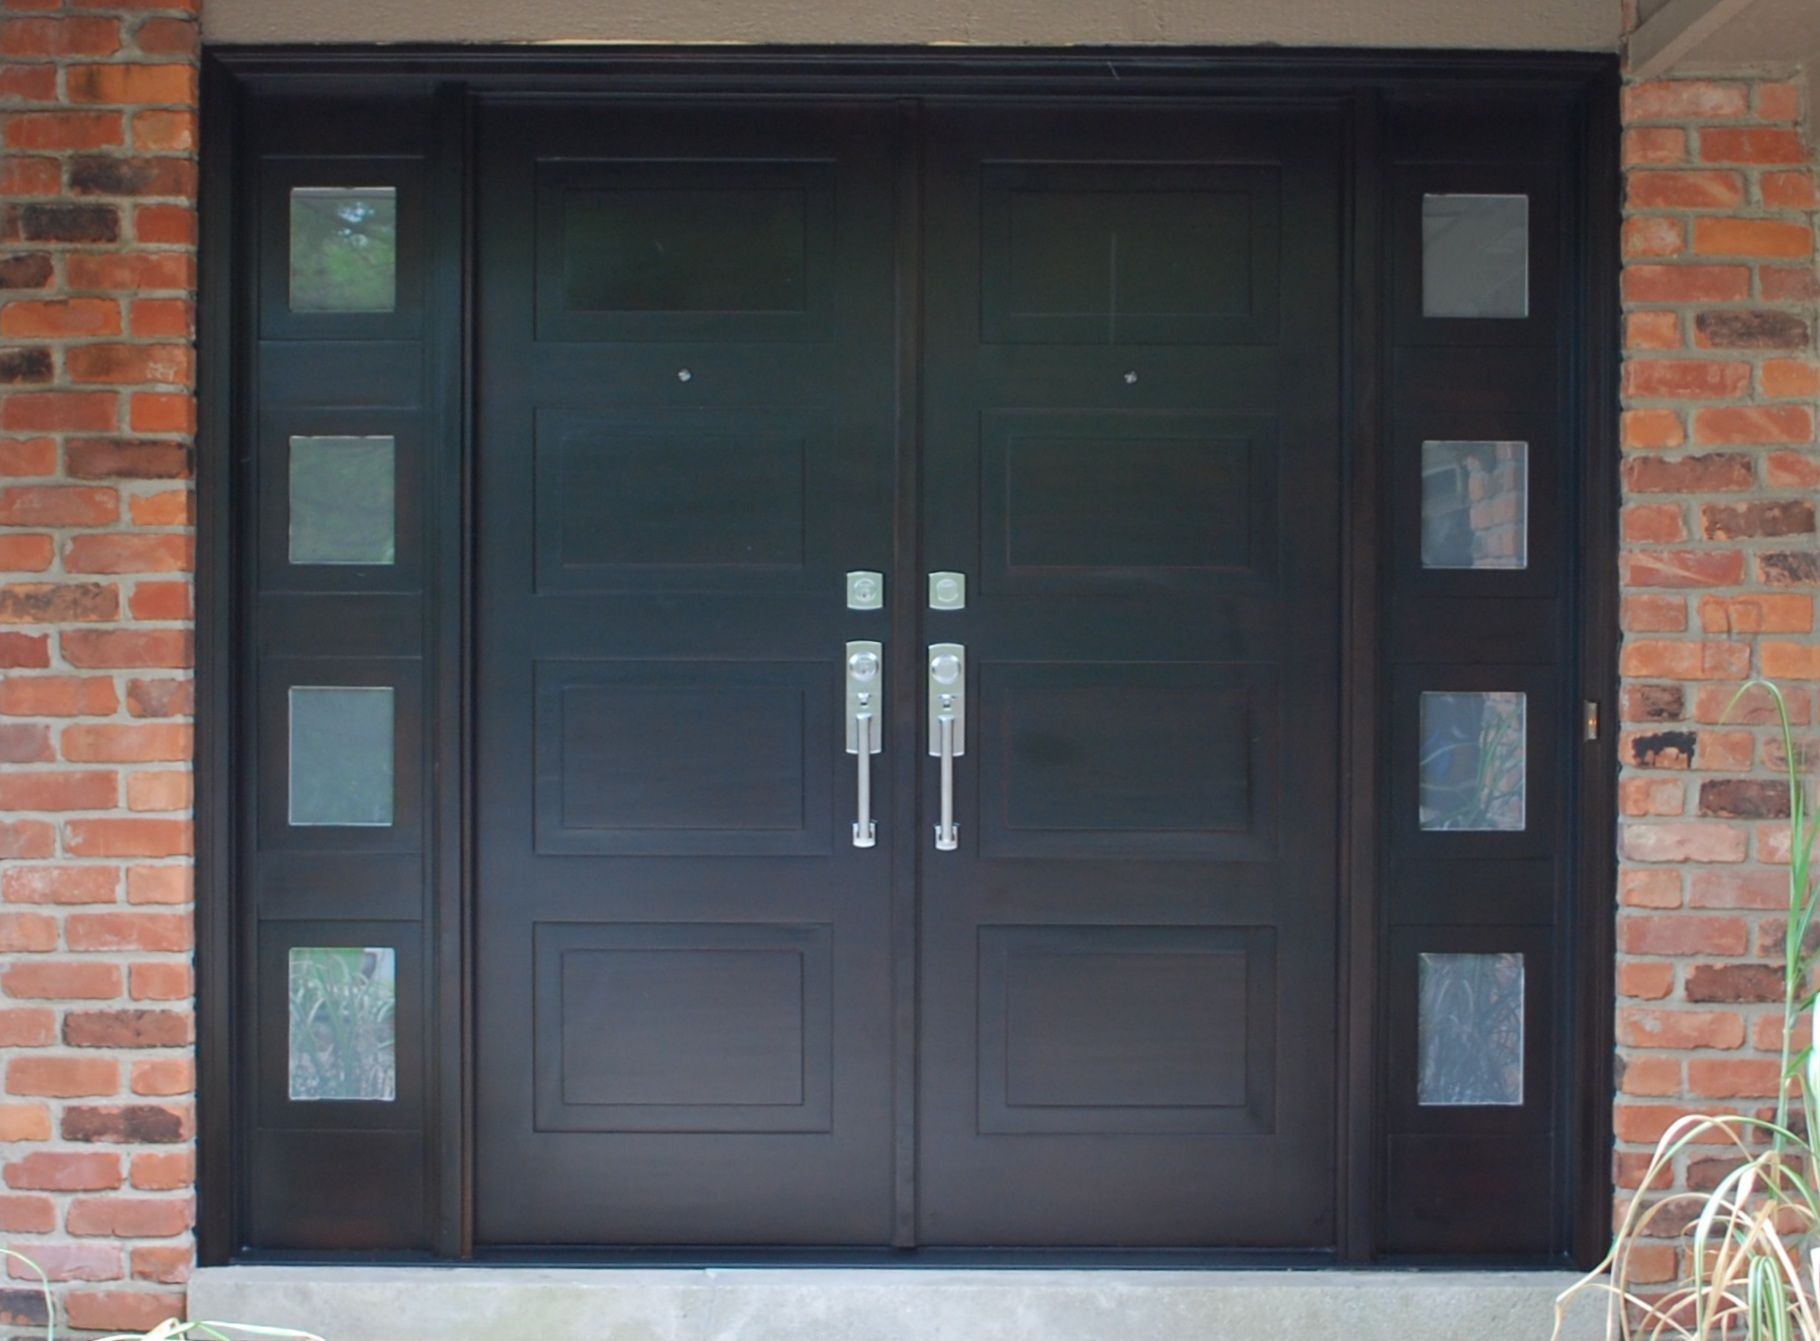 Modern front doors black - Exterior Double Doors For Private And Commercial Building Http Www Interioranddecor